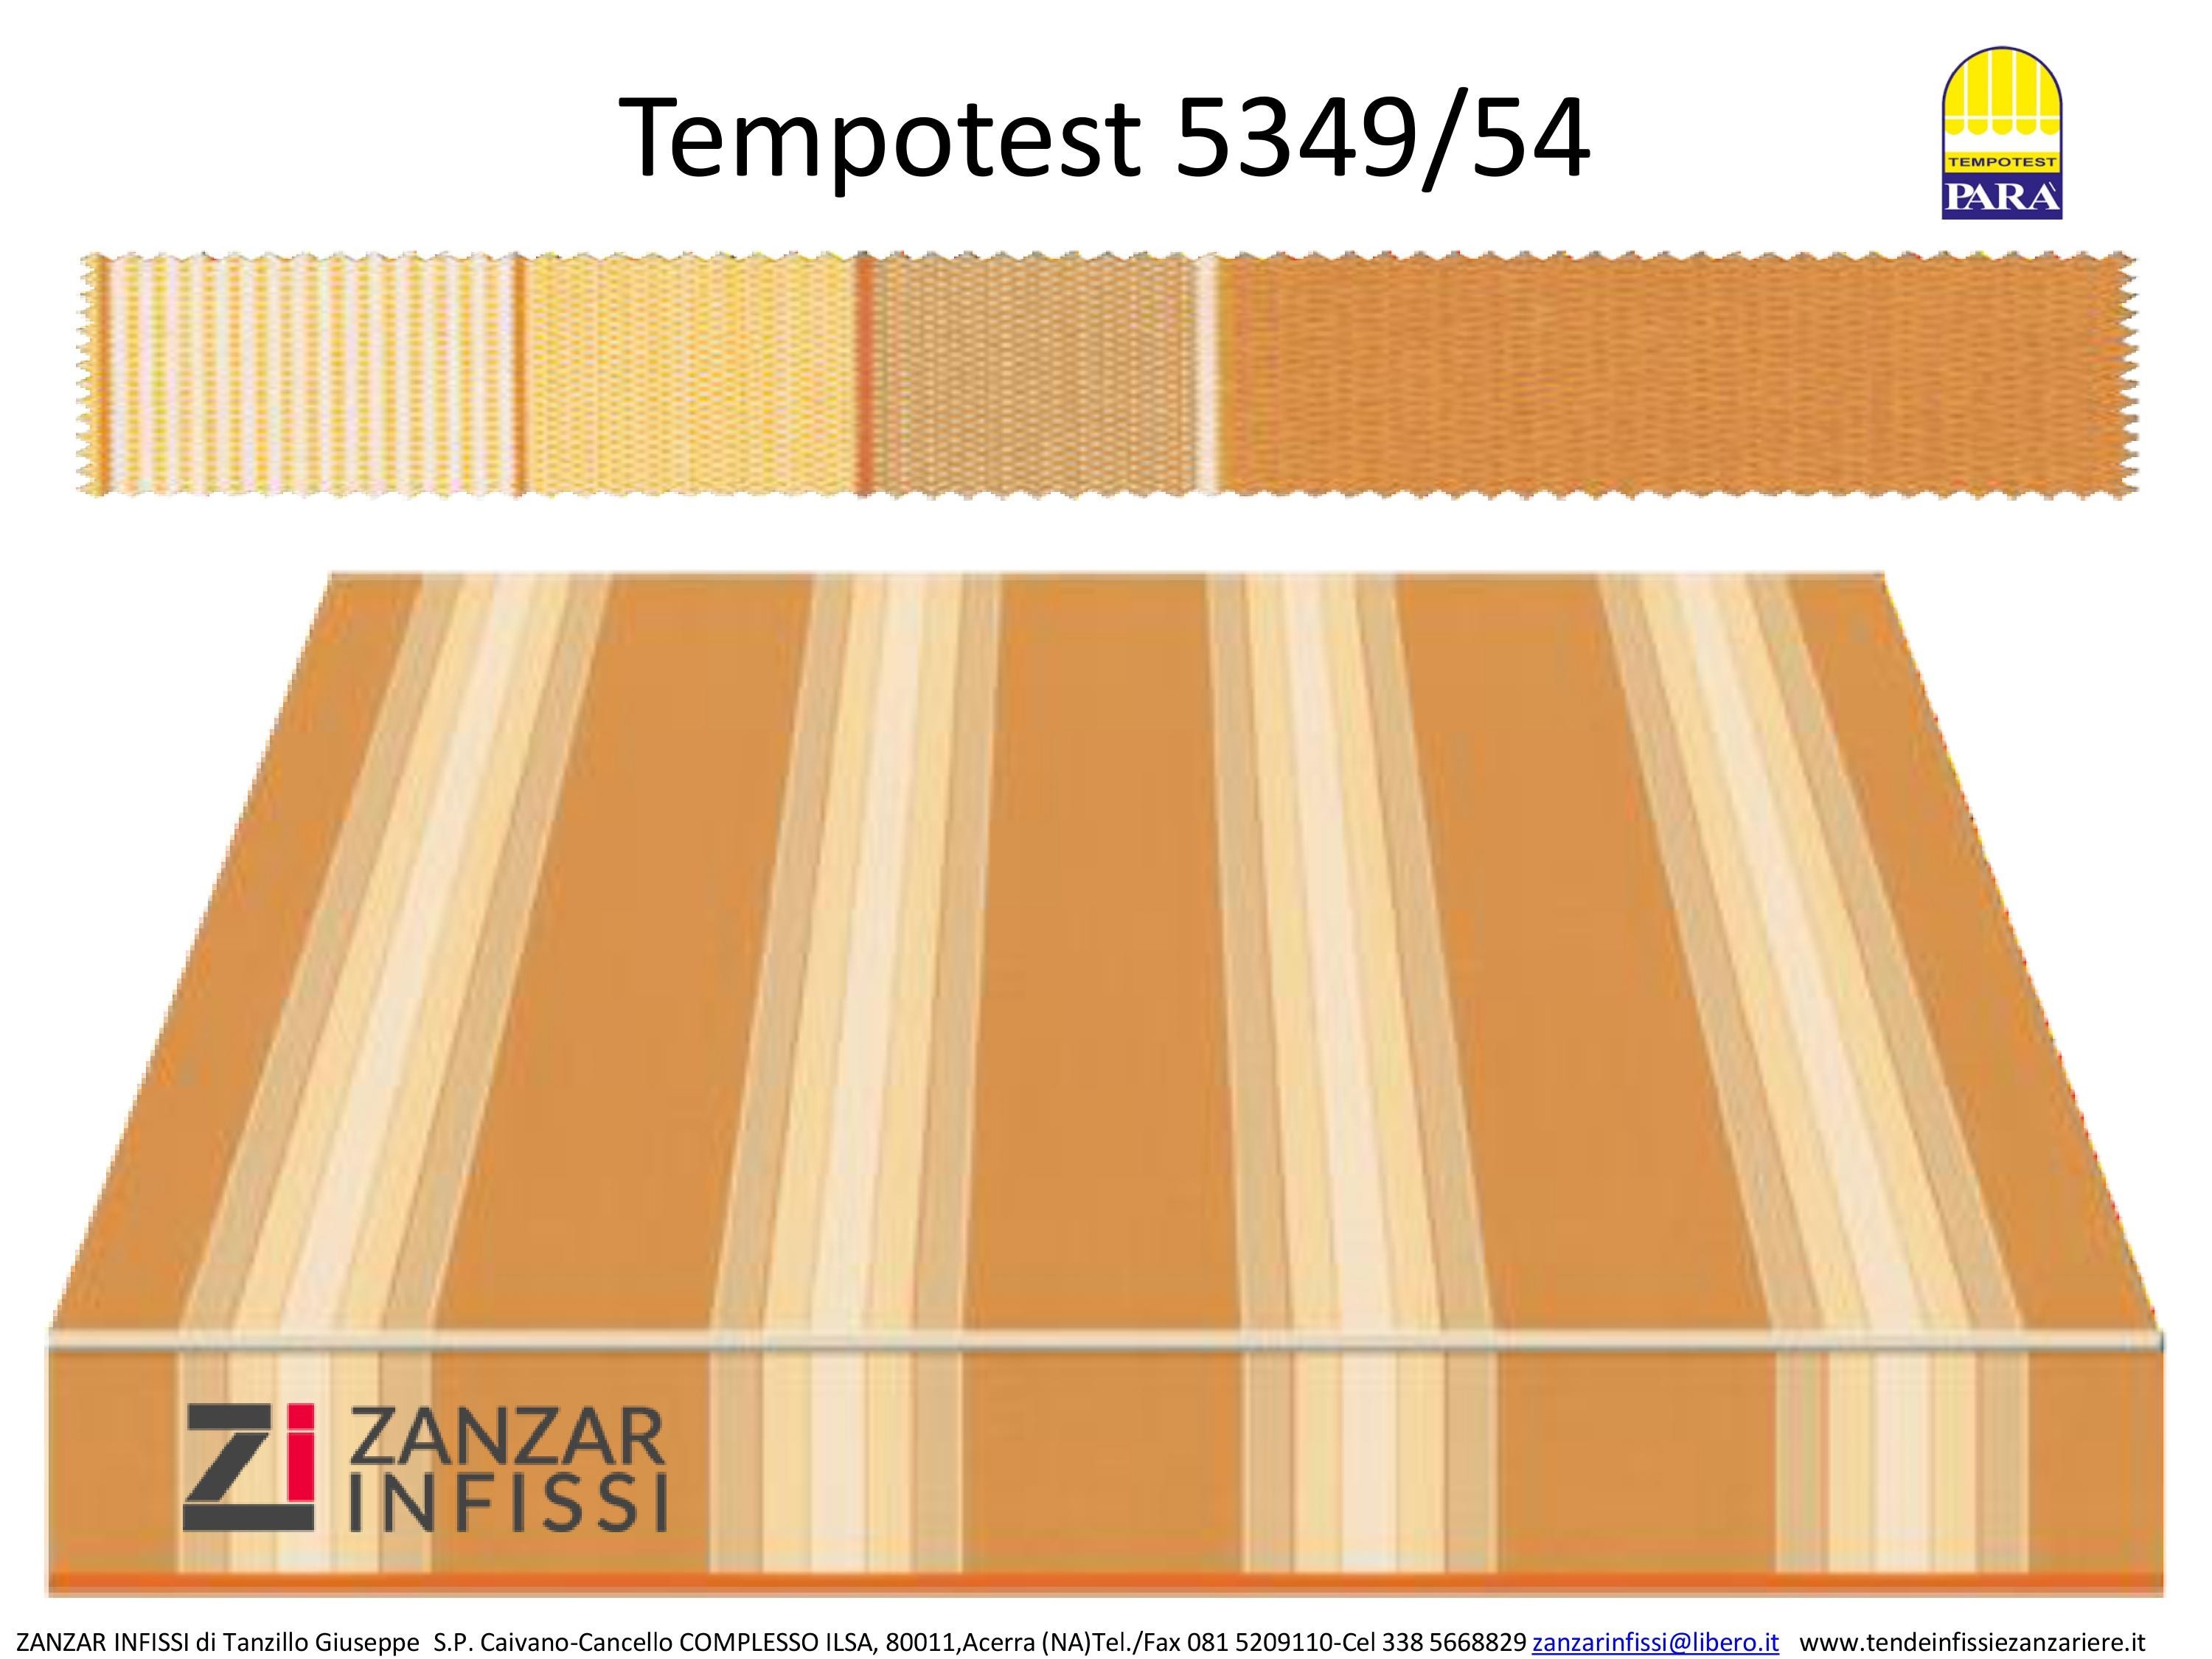 Tempotest 5349/54